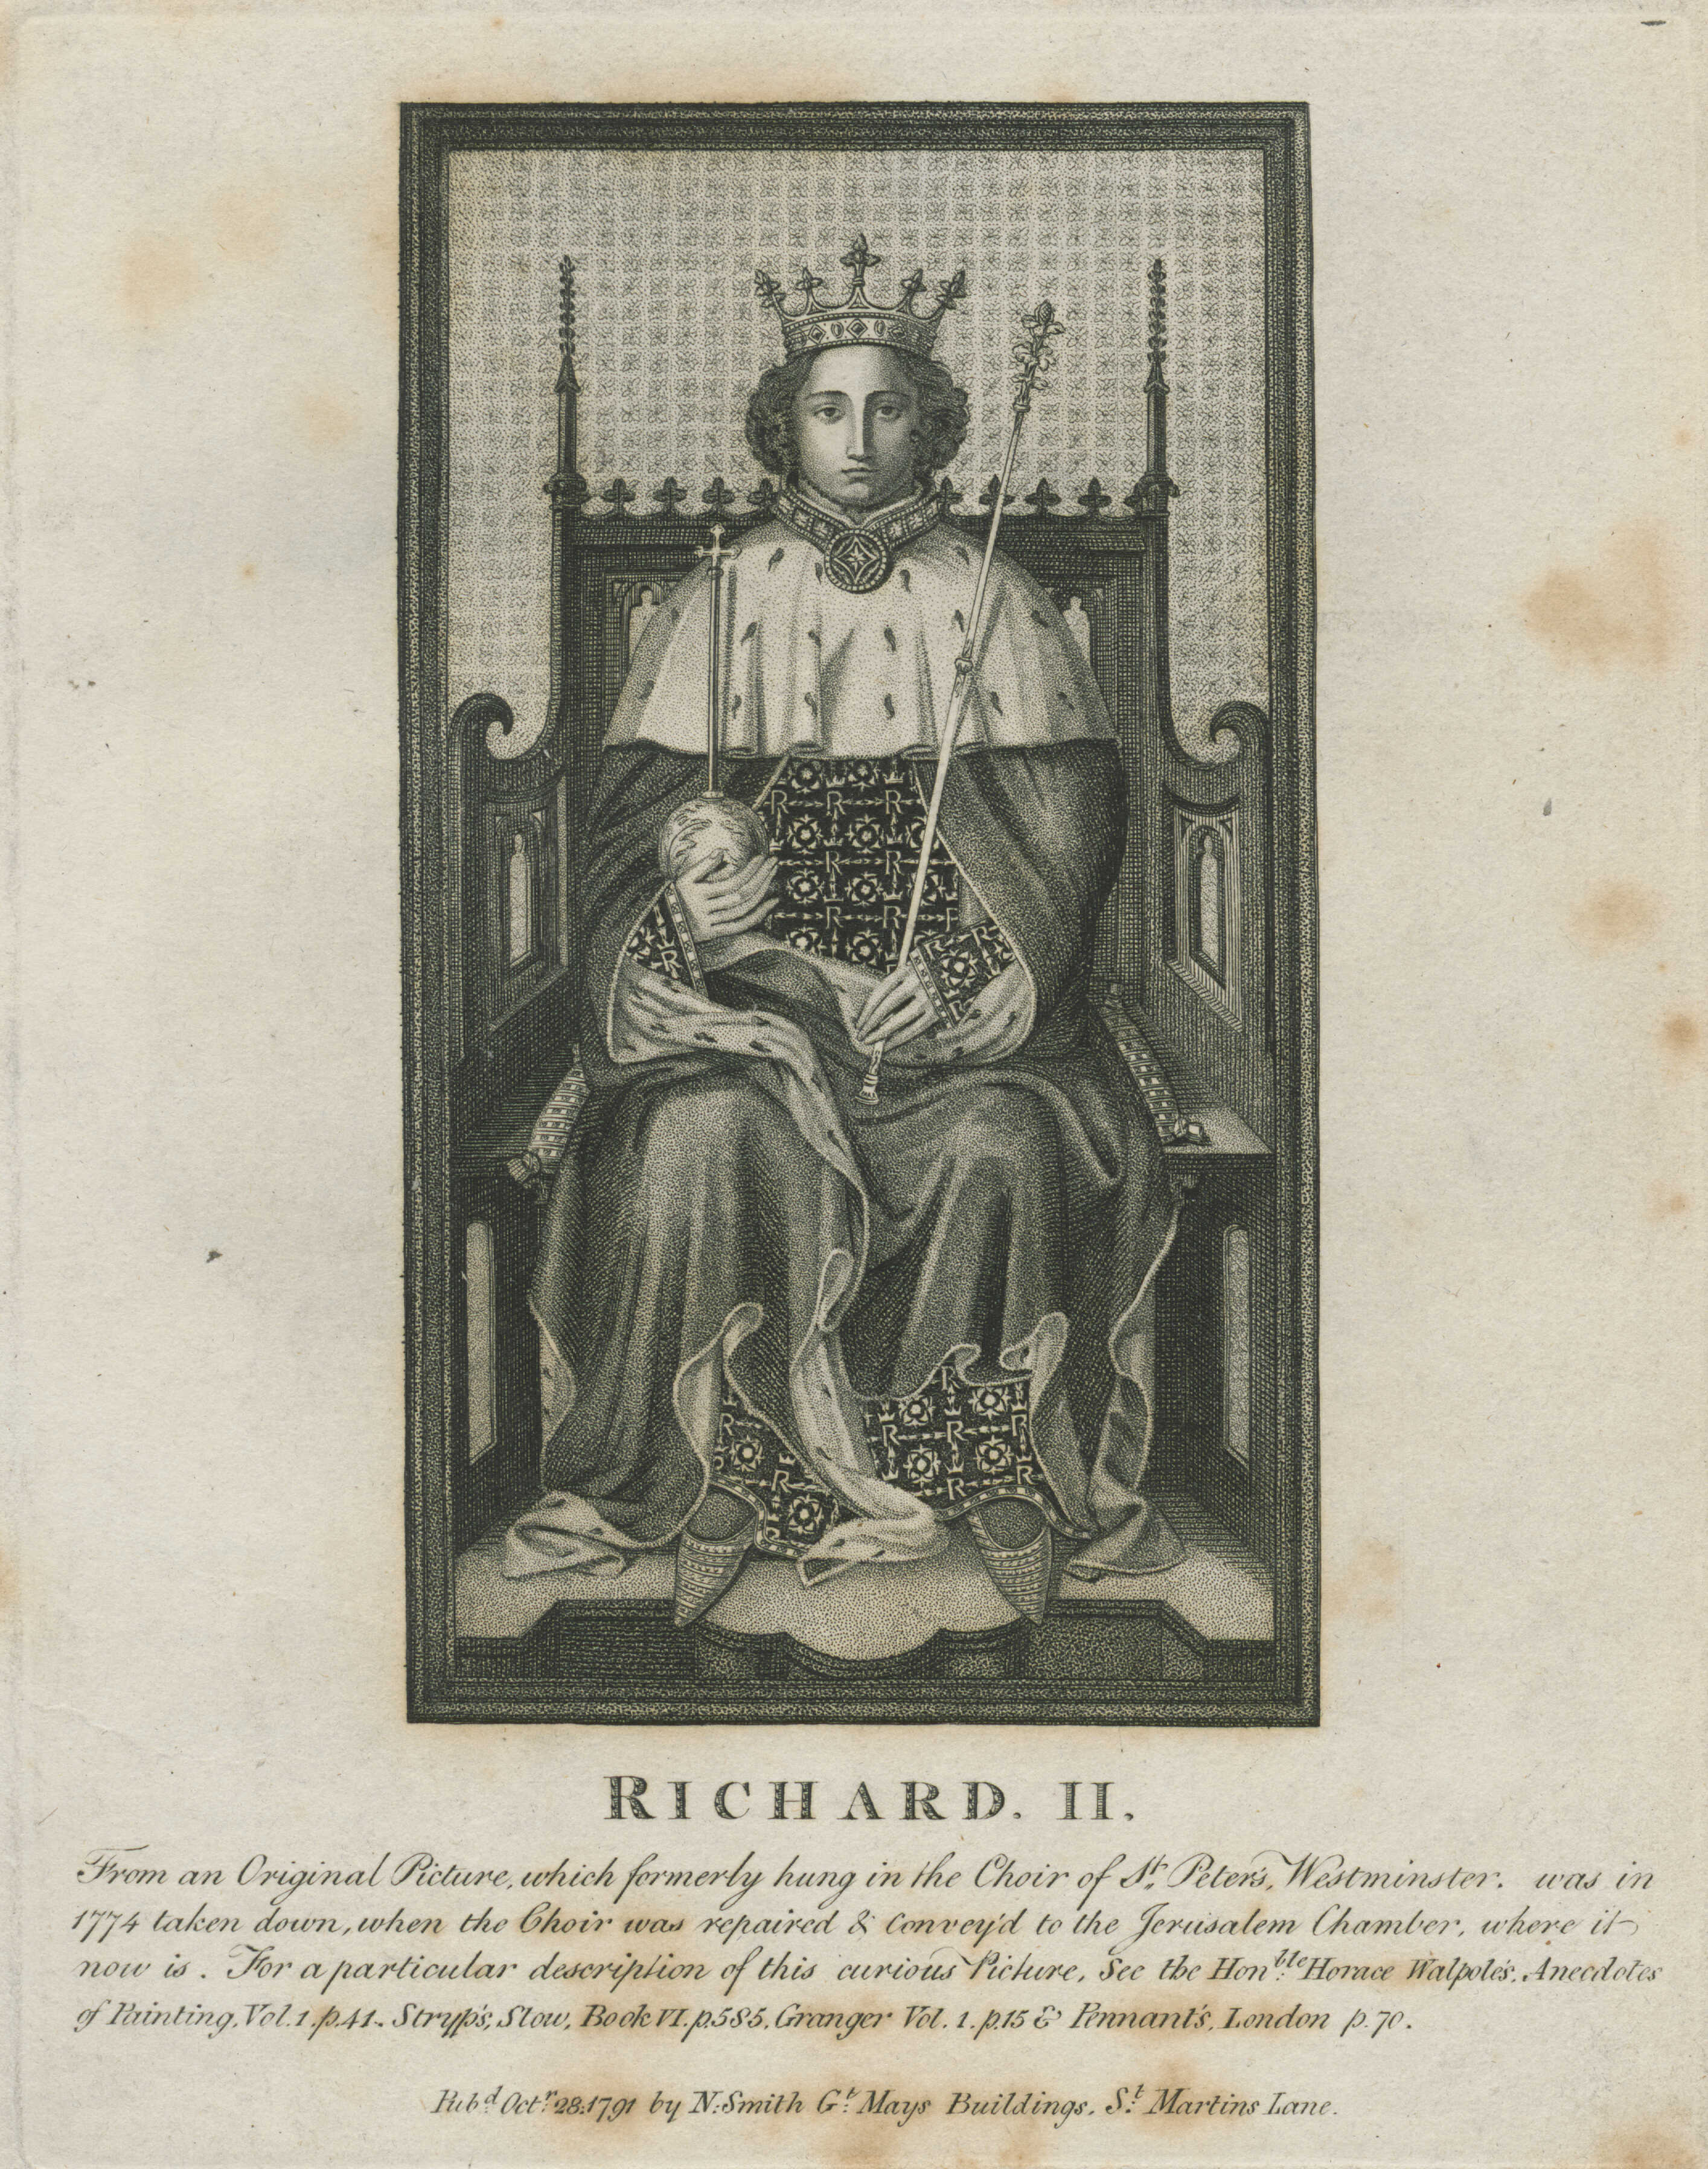 24-richard-ii-formerly-hung-in-the-choir-of-st-peters-westminster-then-in-the-jerusalem-chamber